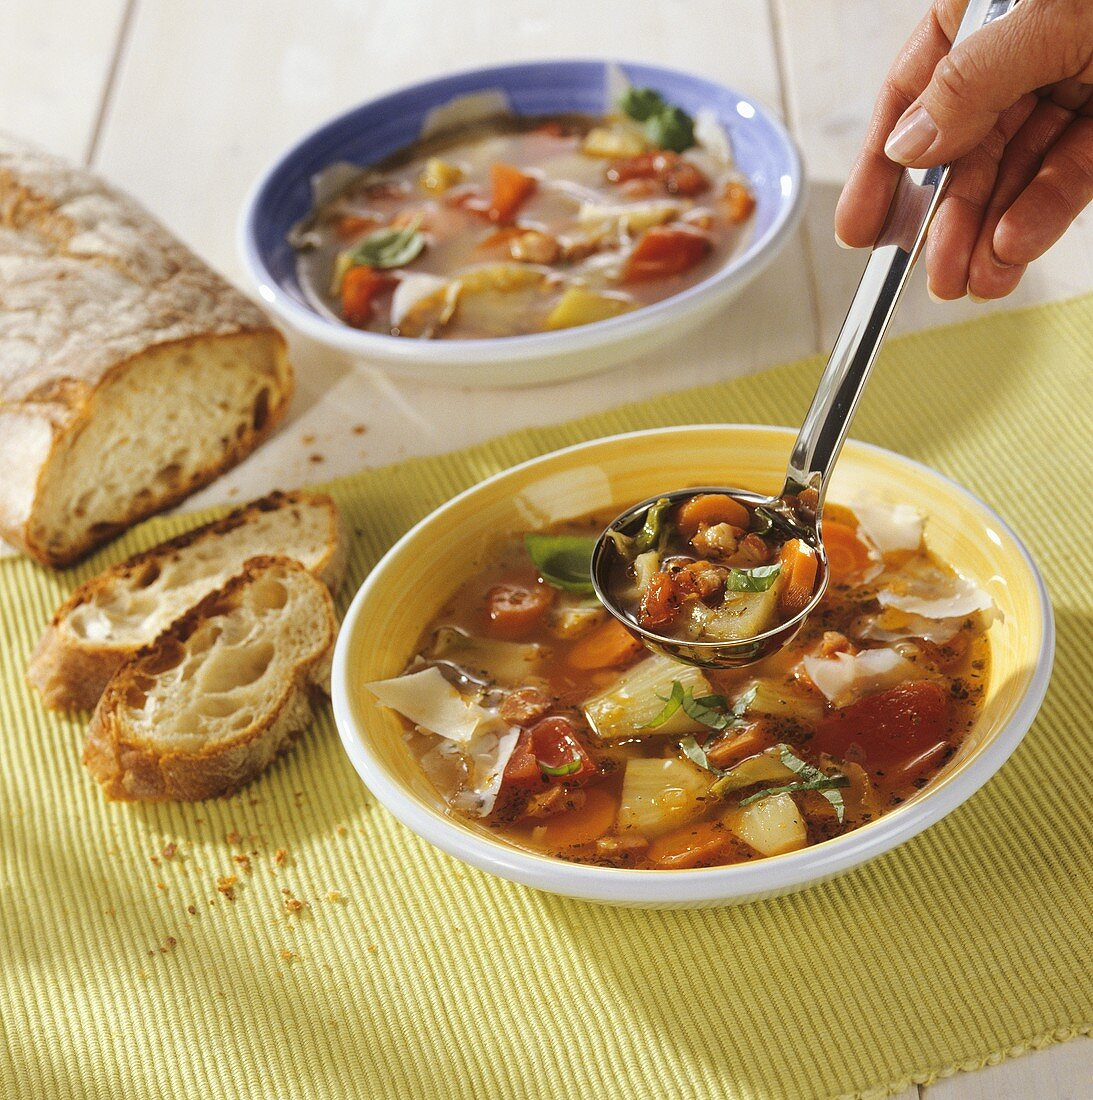 Minestrone primavera (Vegetable soup with bread, Italy)